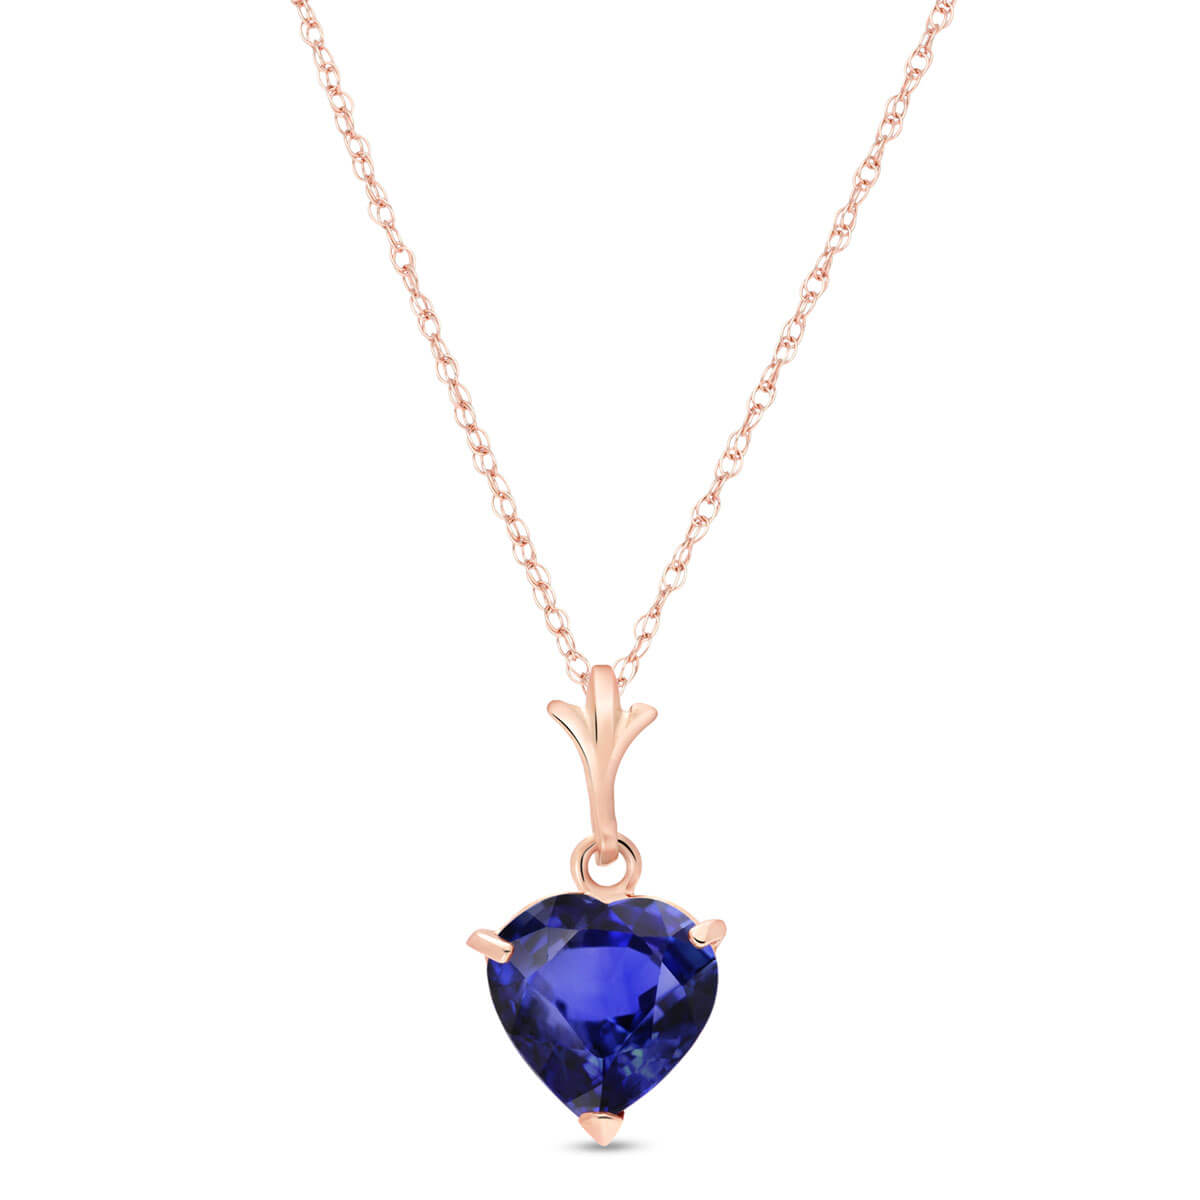 Sapphire Heart Pendant Necklace 1.55 ct in 9ct Rose Gold